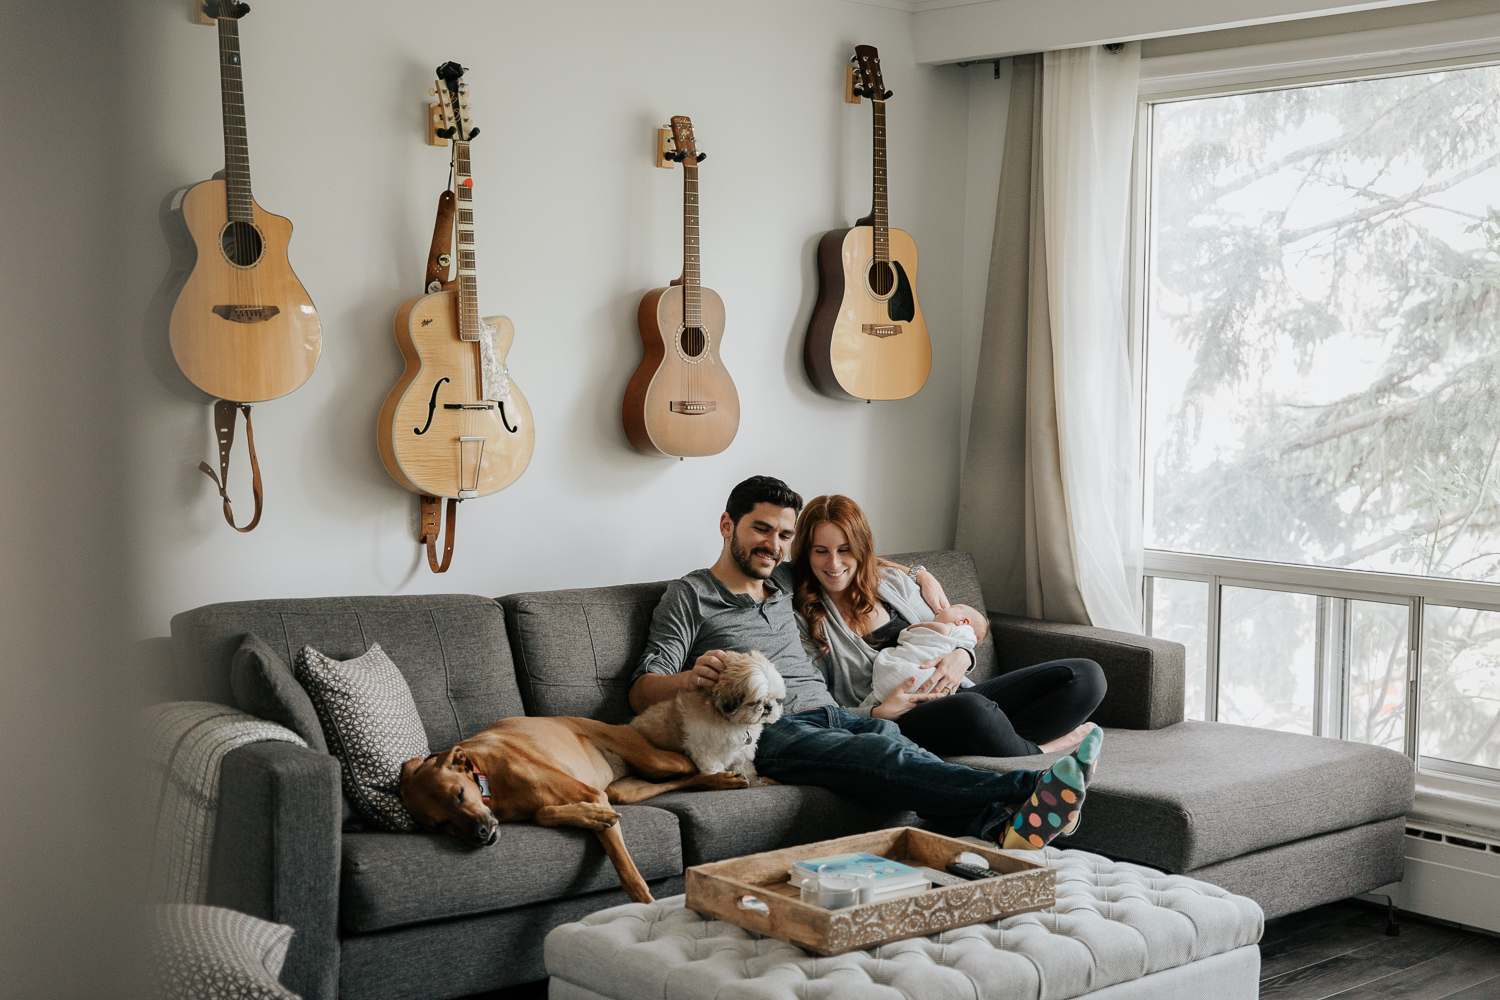 new parents sitting on living room couch, mom holding 2 week old baby boy, large and small dog lying on couch next to father, mother smiling at them - York Region In-HomePhotography